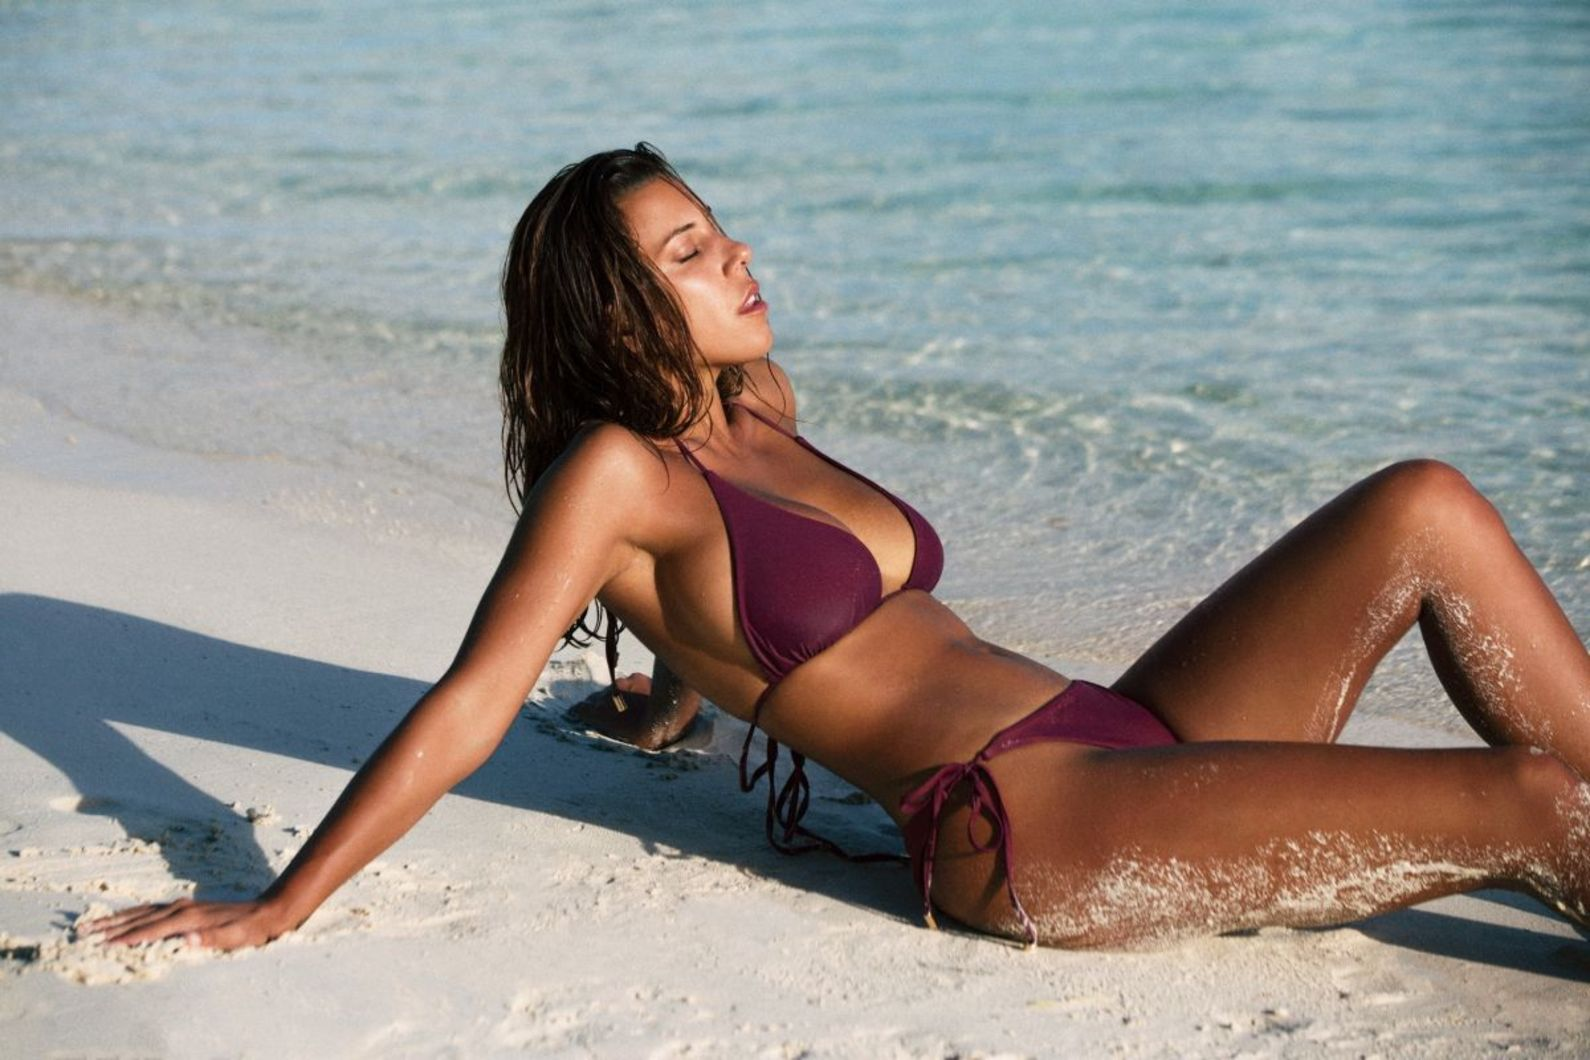 770d07c3a7f6b Founders, Natasha Oakley and Devin Brugman, came up with the idea that if  you were wearing a bikini on a Monday, you were either on holiday or a day  off ...